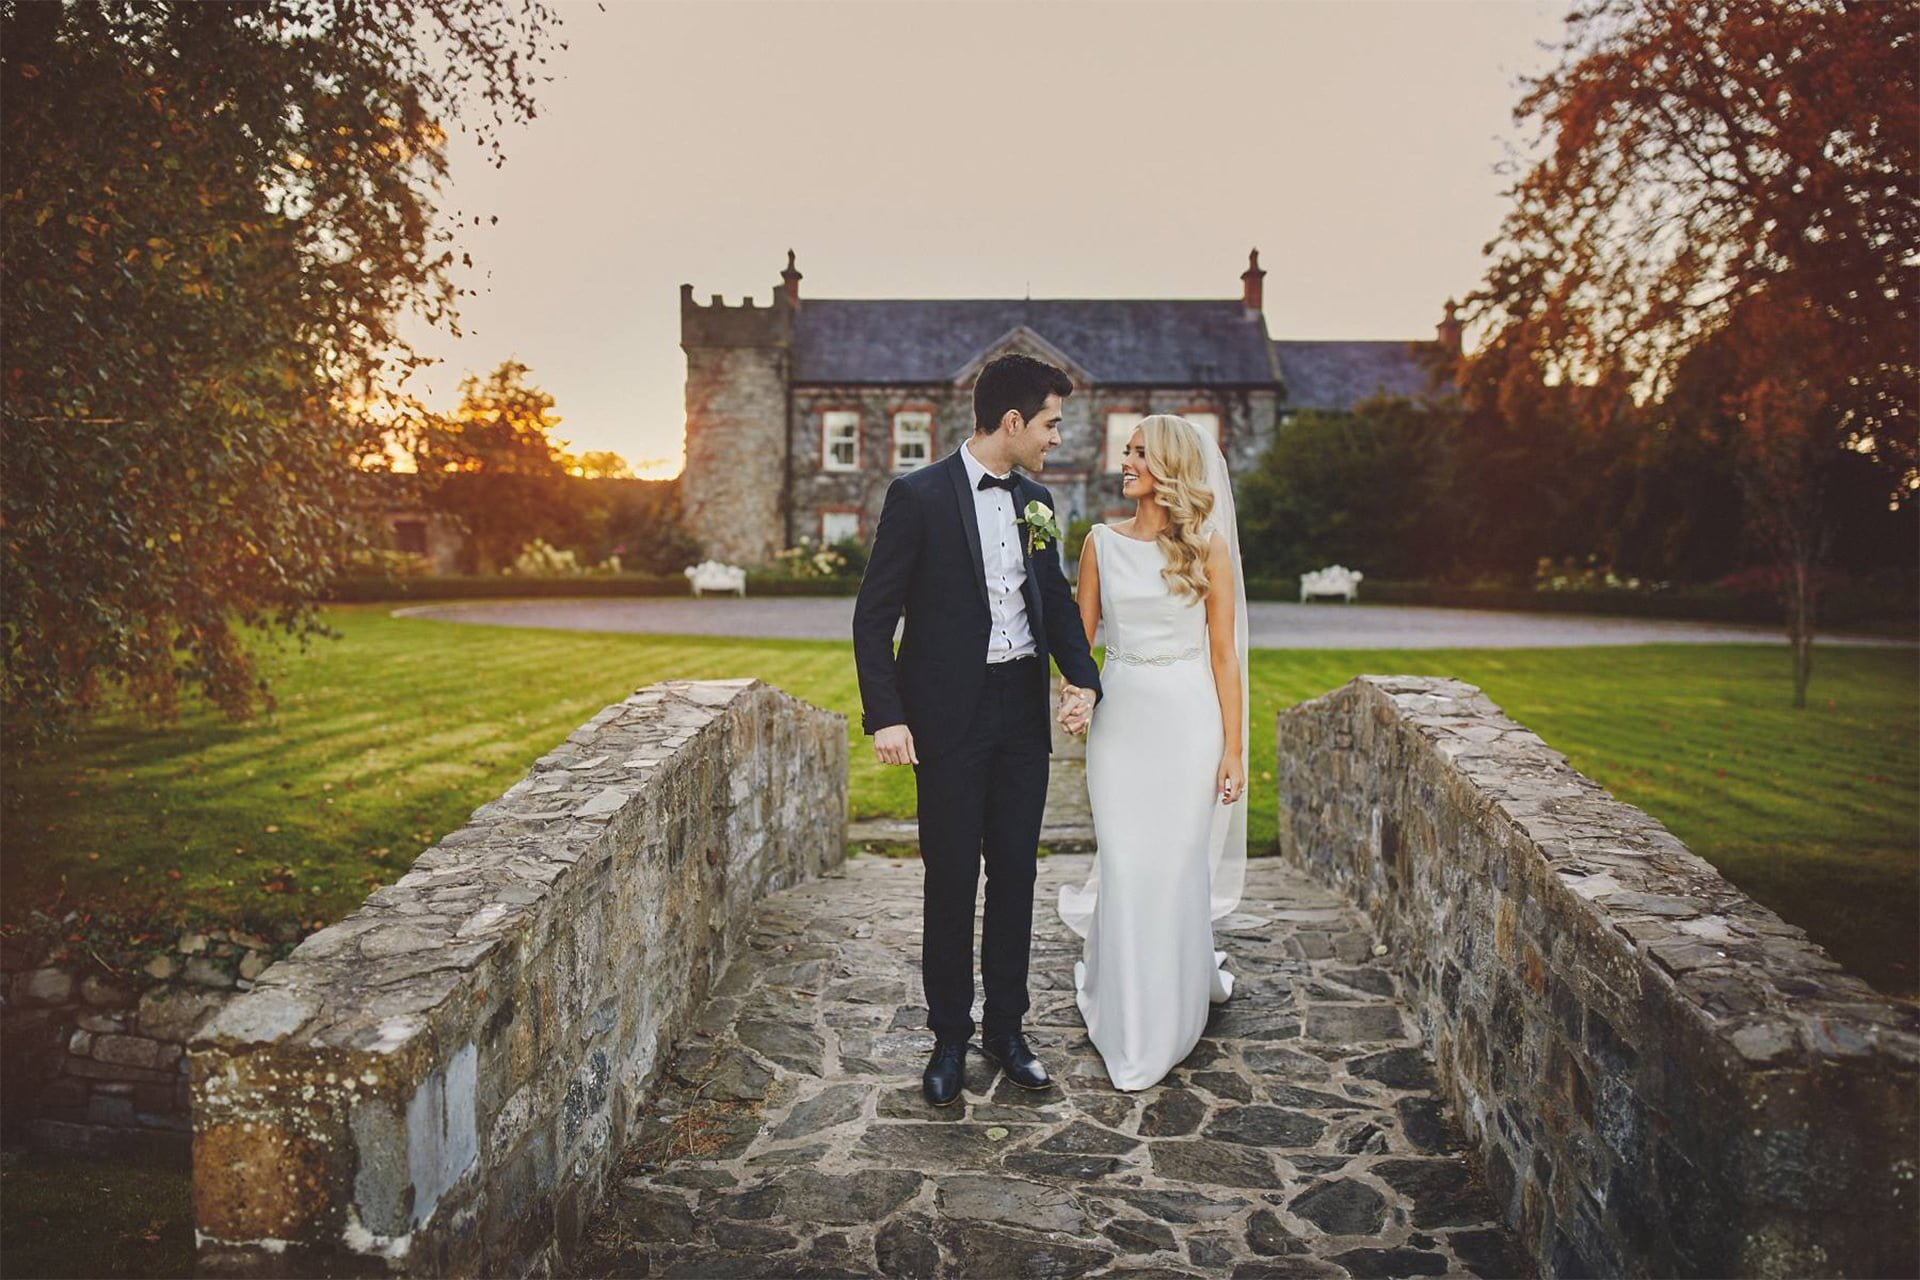 5 tips wedding sunset photos 23